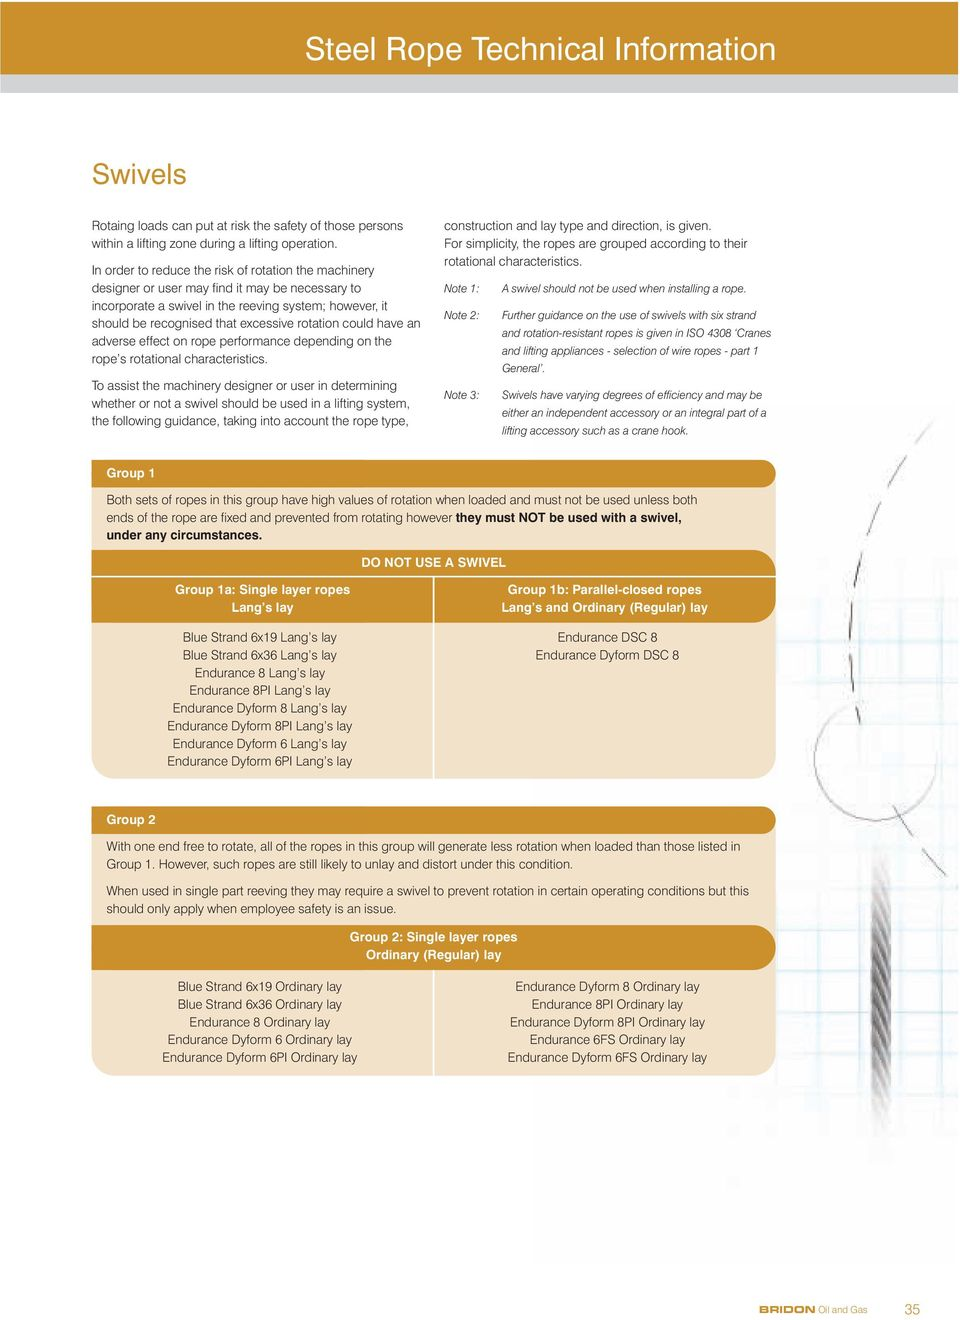 Steel Rope Technical Information - PDF